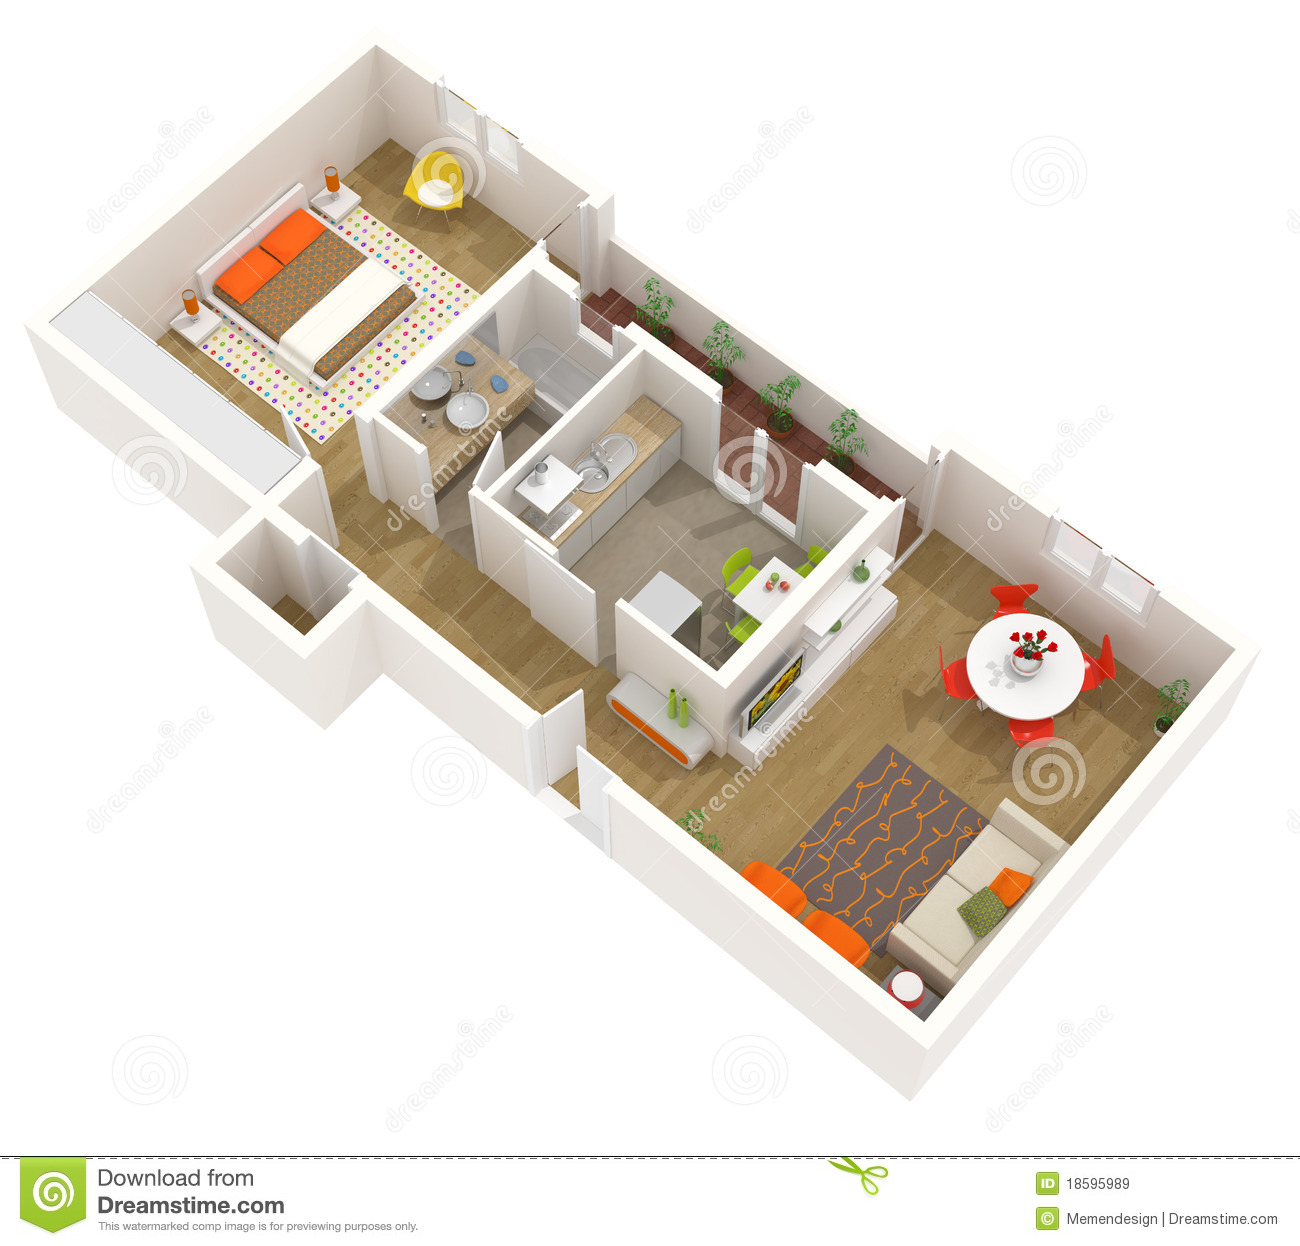 Apartment interior design 3d floor plan stock for House designs 3d model